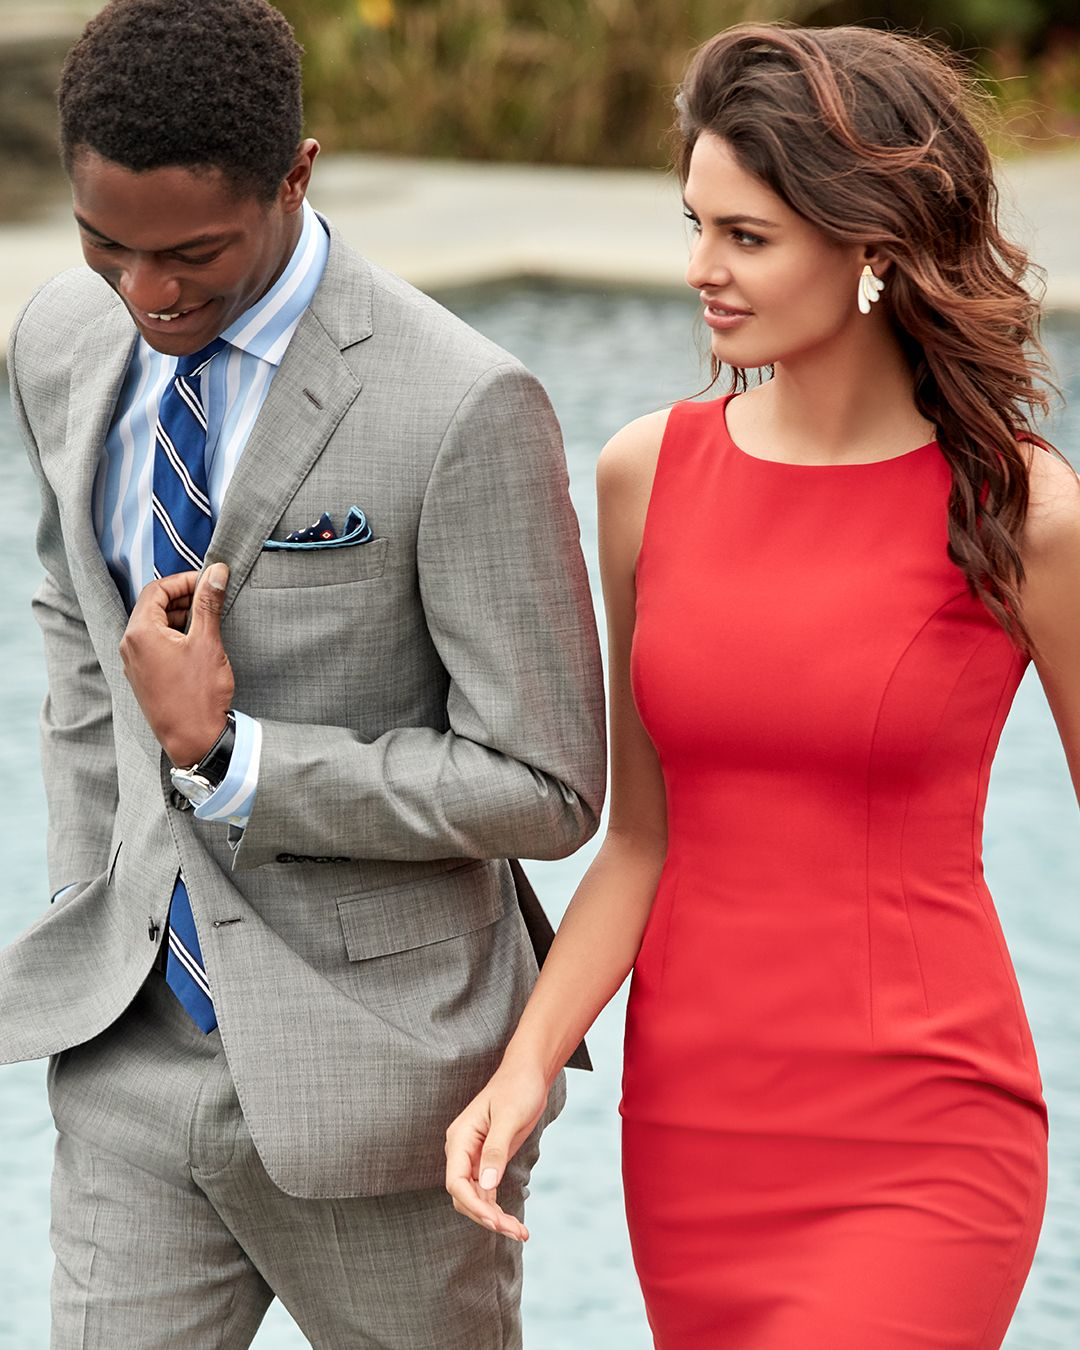 Image result for style dressing for men and women